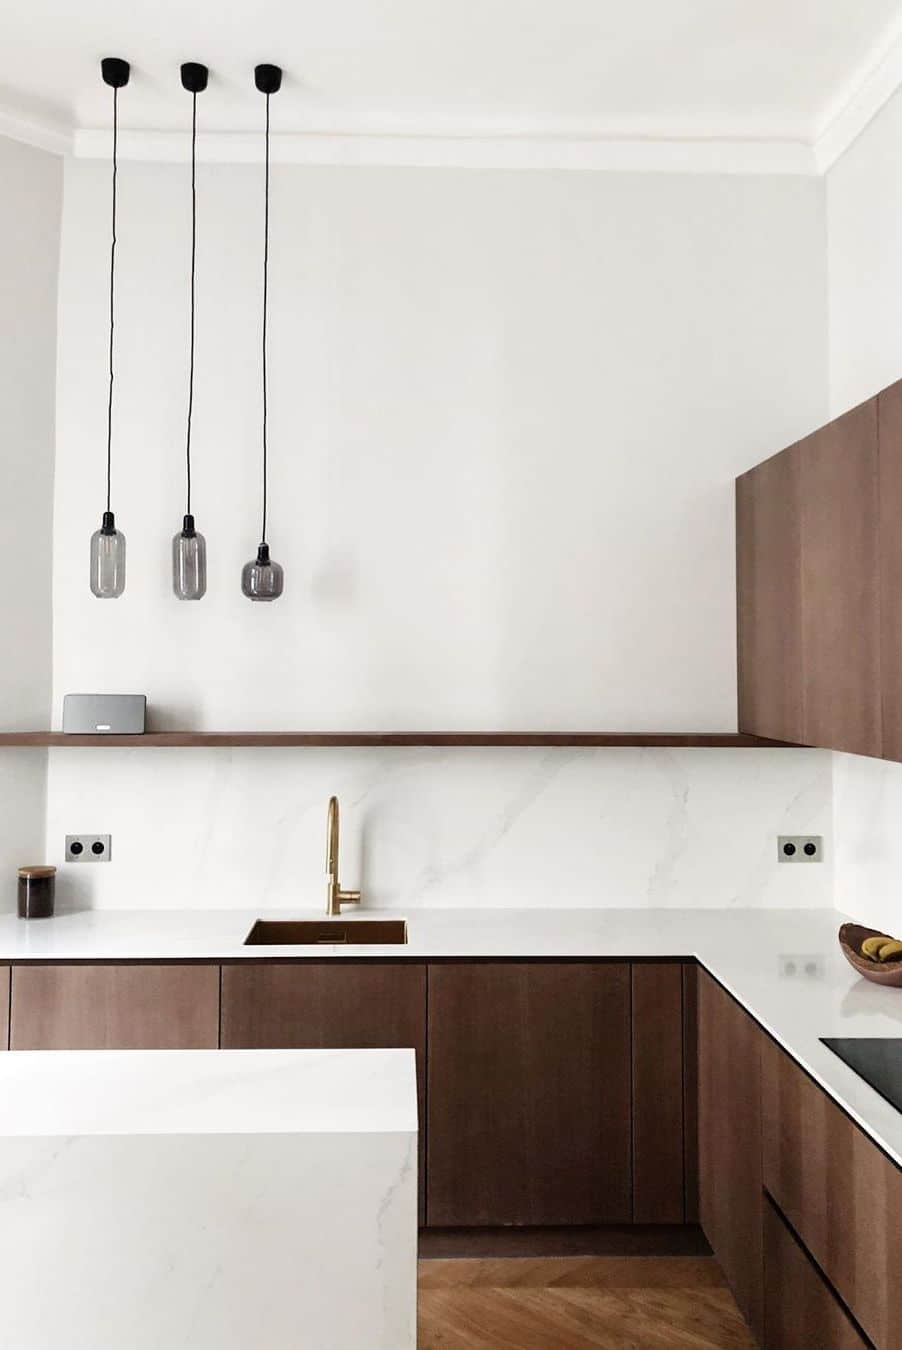 Wood kitchen design ideas with dark and light accents with hanging lighting and shelf